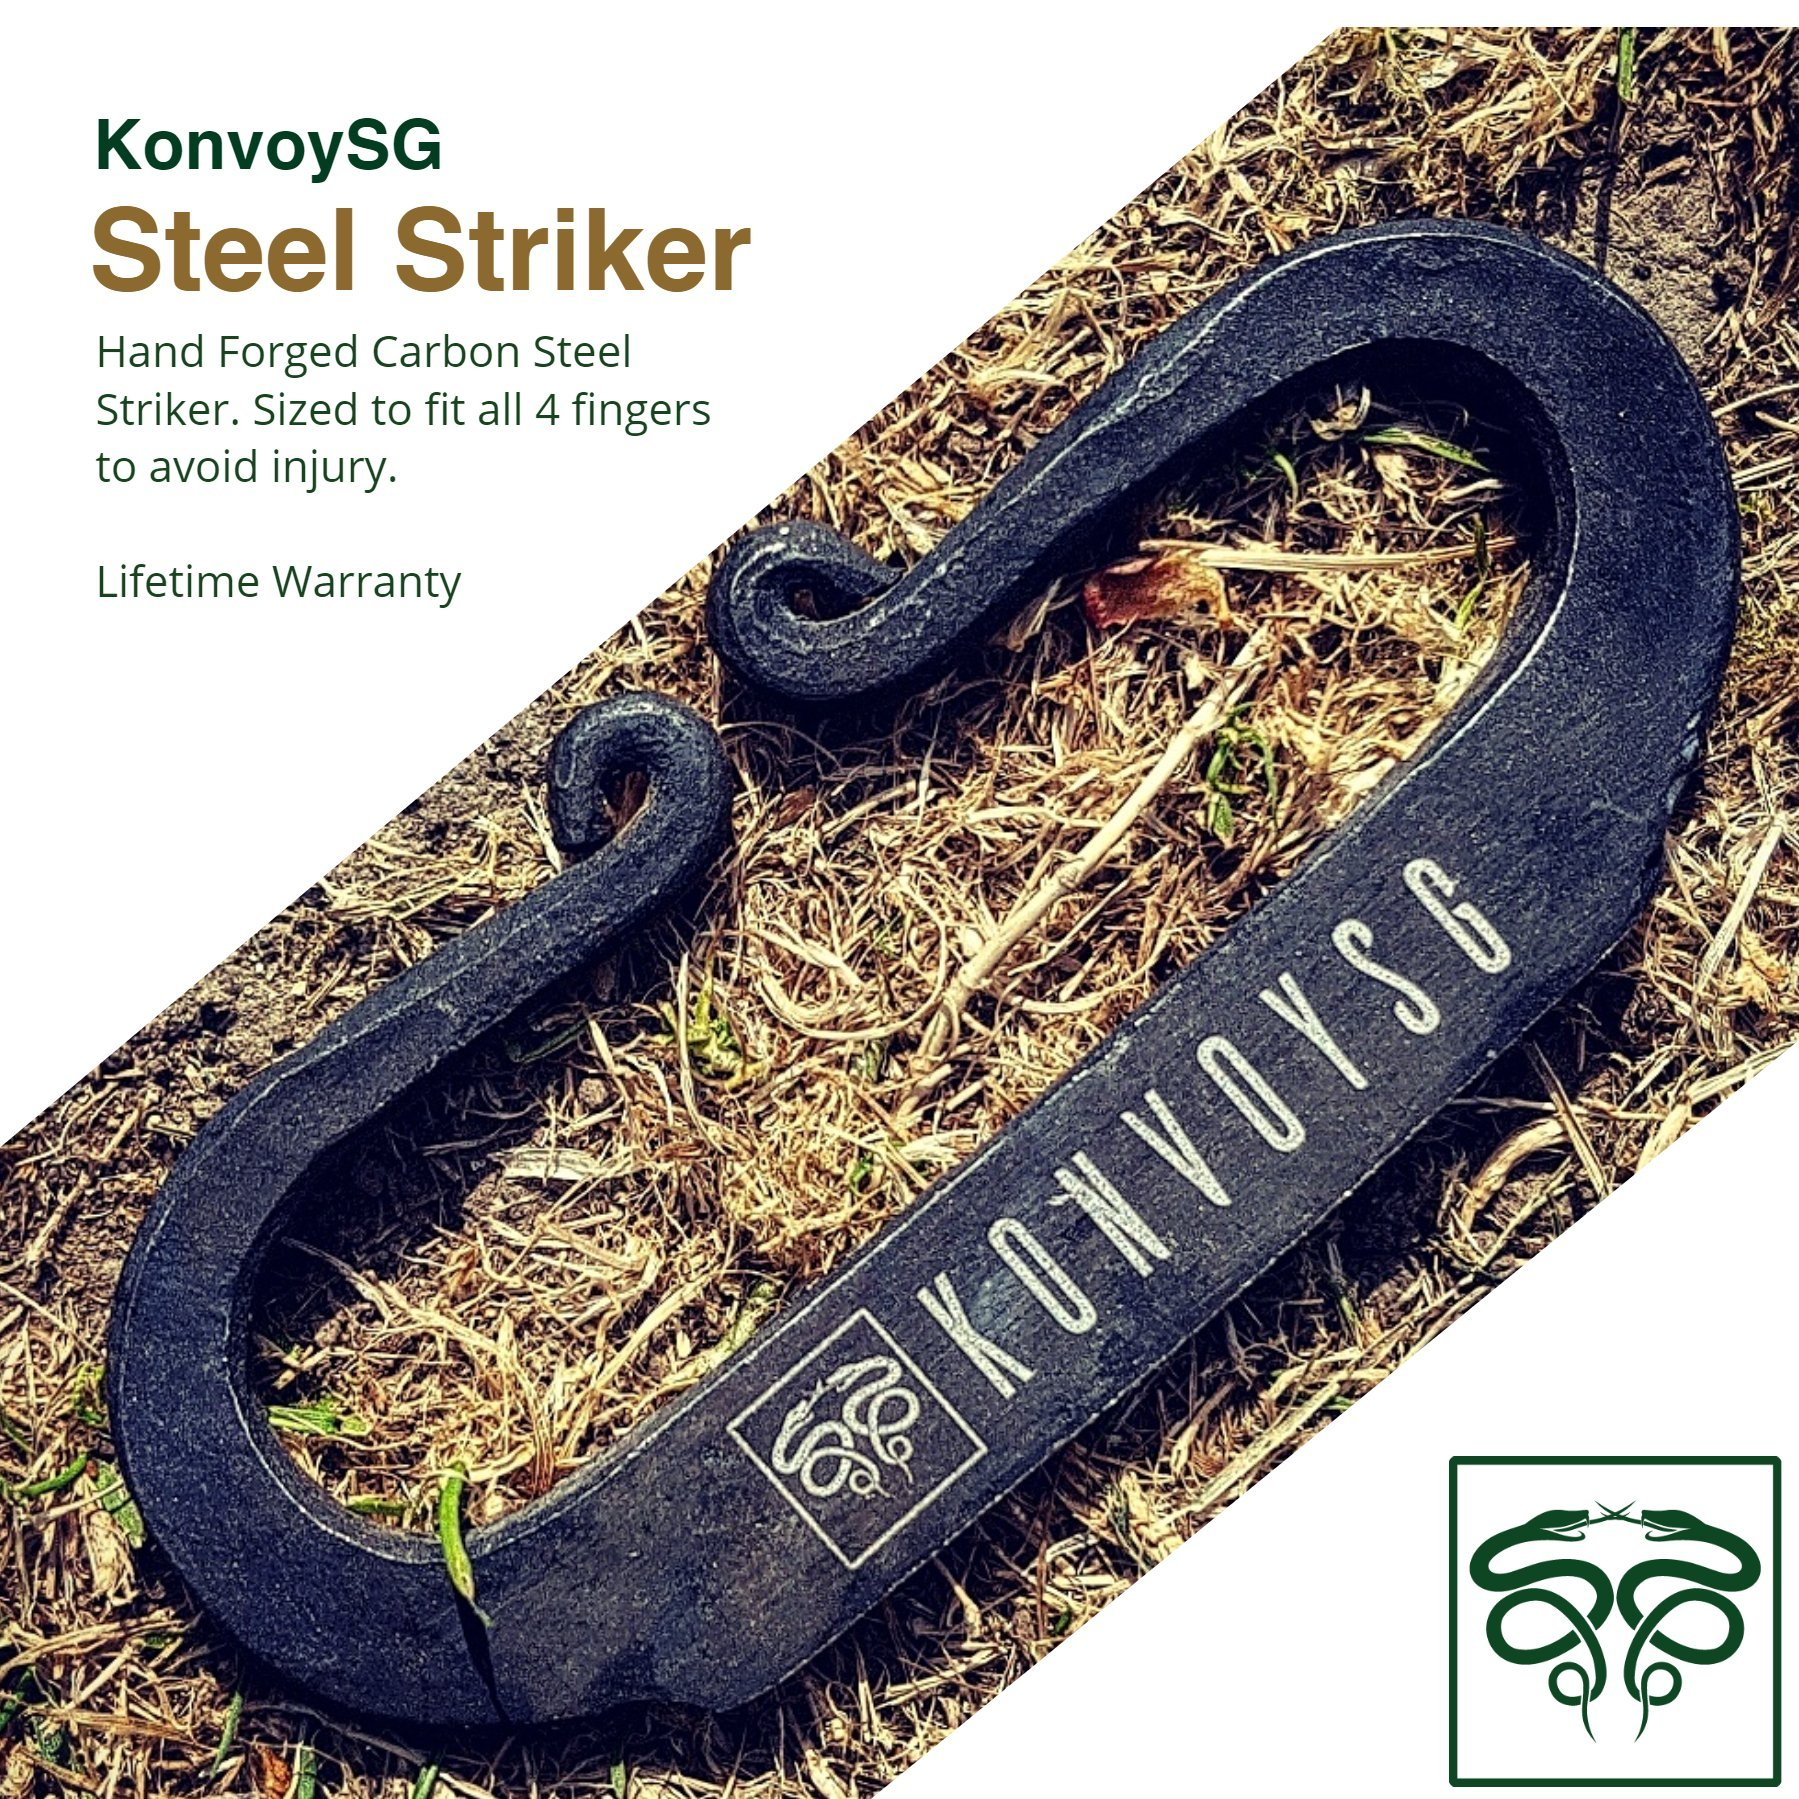 KonvoySG Flint and Steel Kit. Fire Striker, English Flint Stone & Char Cloth Traditional Hand Forged Fire Starter with a Leather Gift Pouch and Emergency Tinder Jute Bag (Black) by KonvoySG (Image #3)